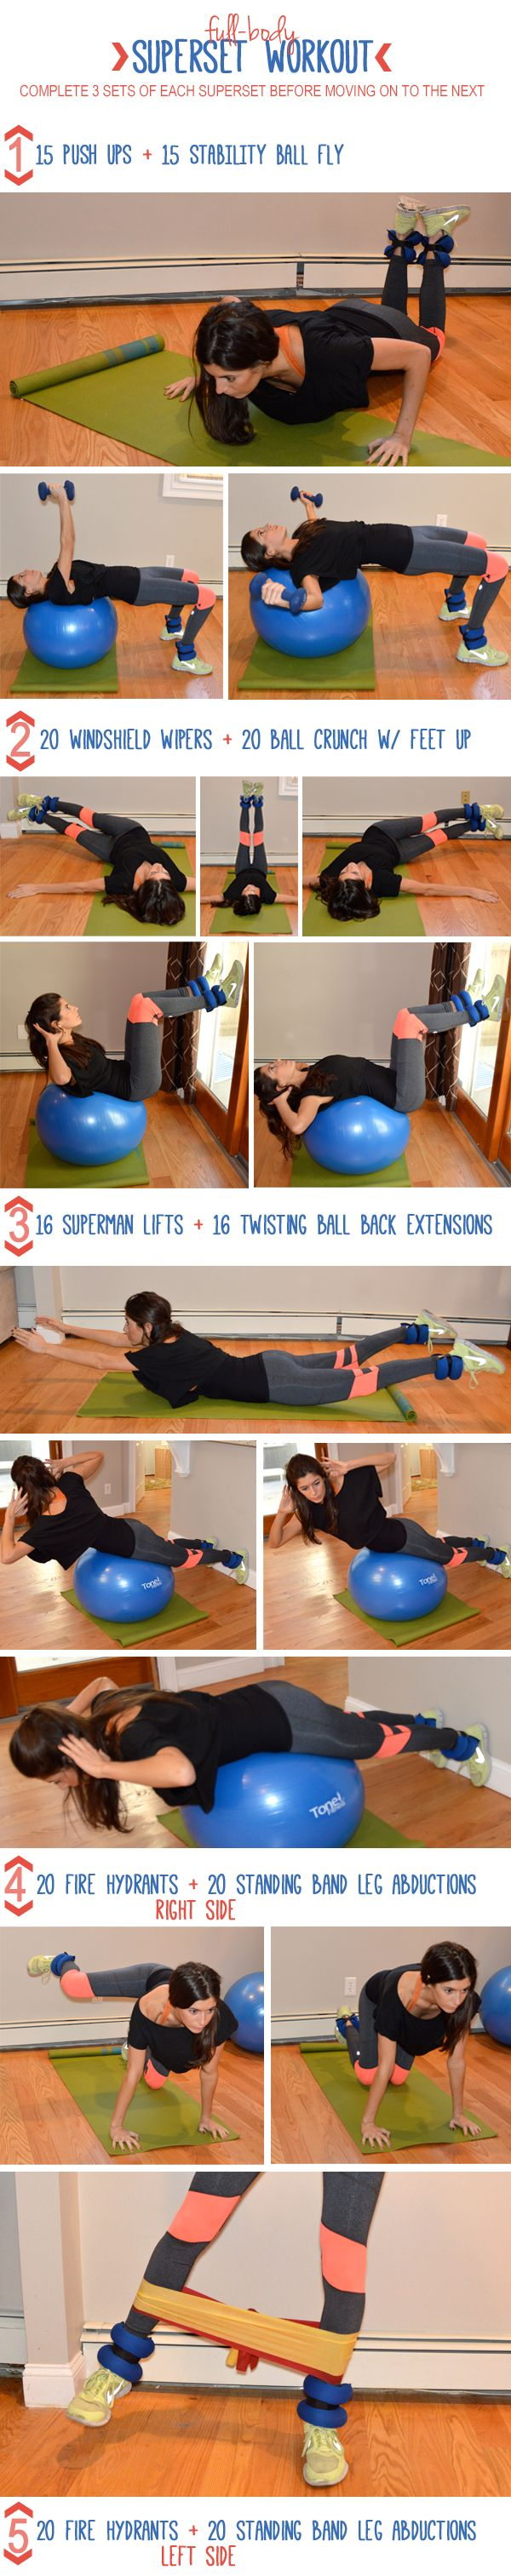 126 Best Exercise Images On Pinterest Workouts Chest And Back Superset Circuit Workout Tone Tighten Full Body